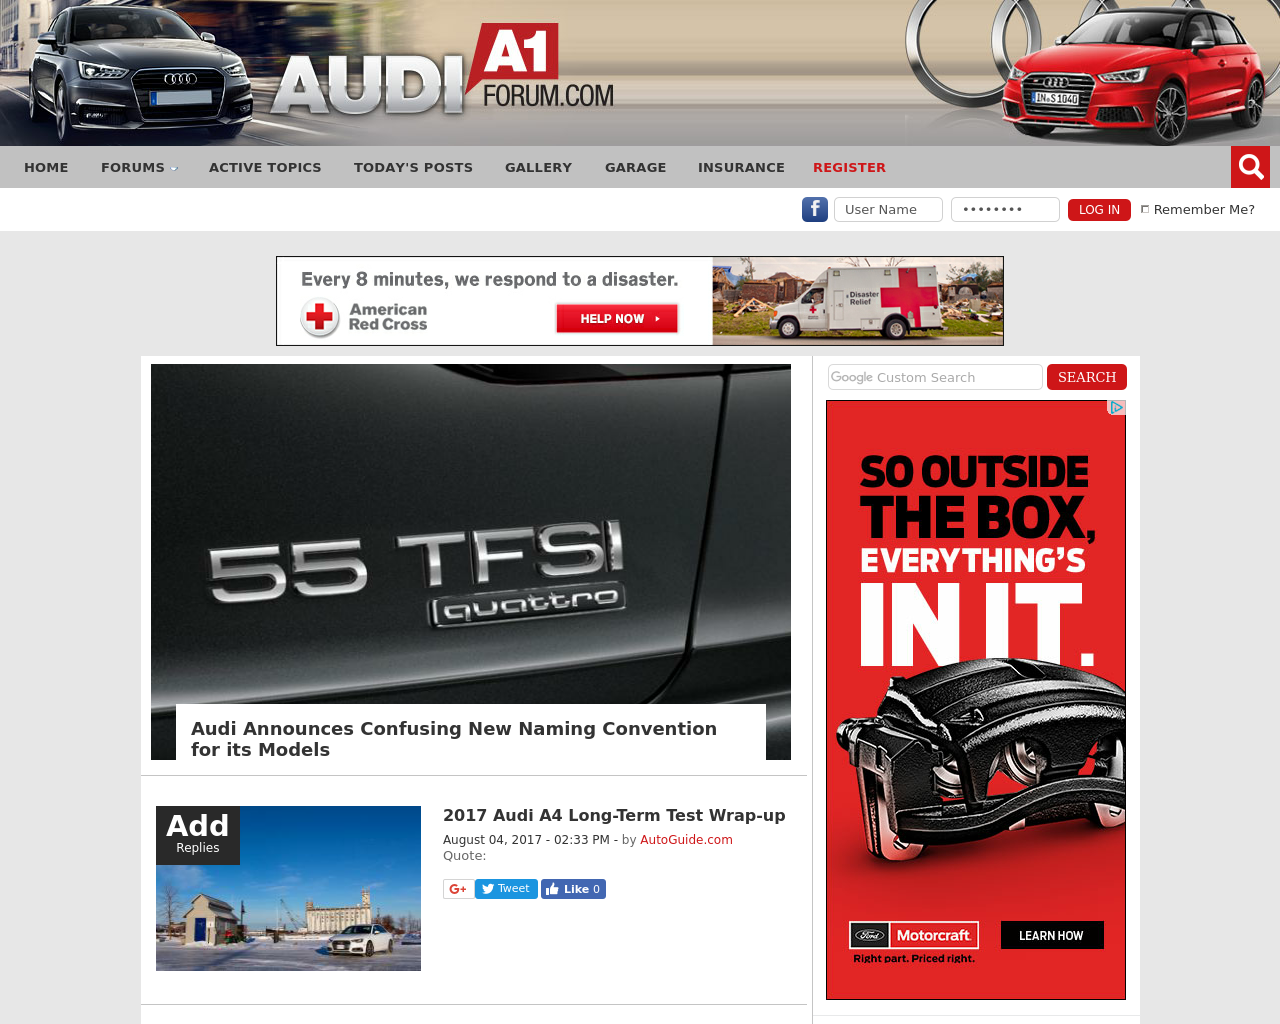 Audi-A1-Forum-Advertising-Reviews-Pricing